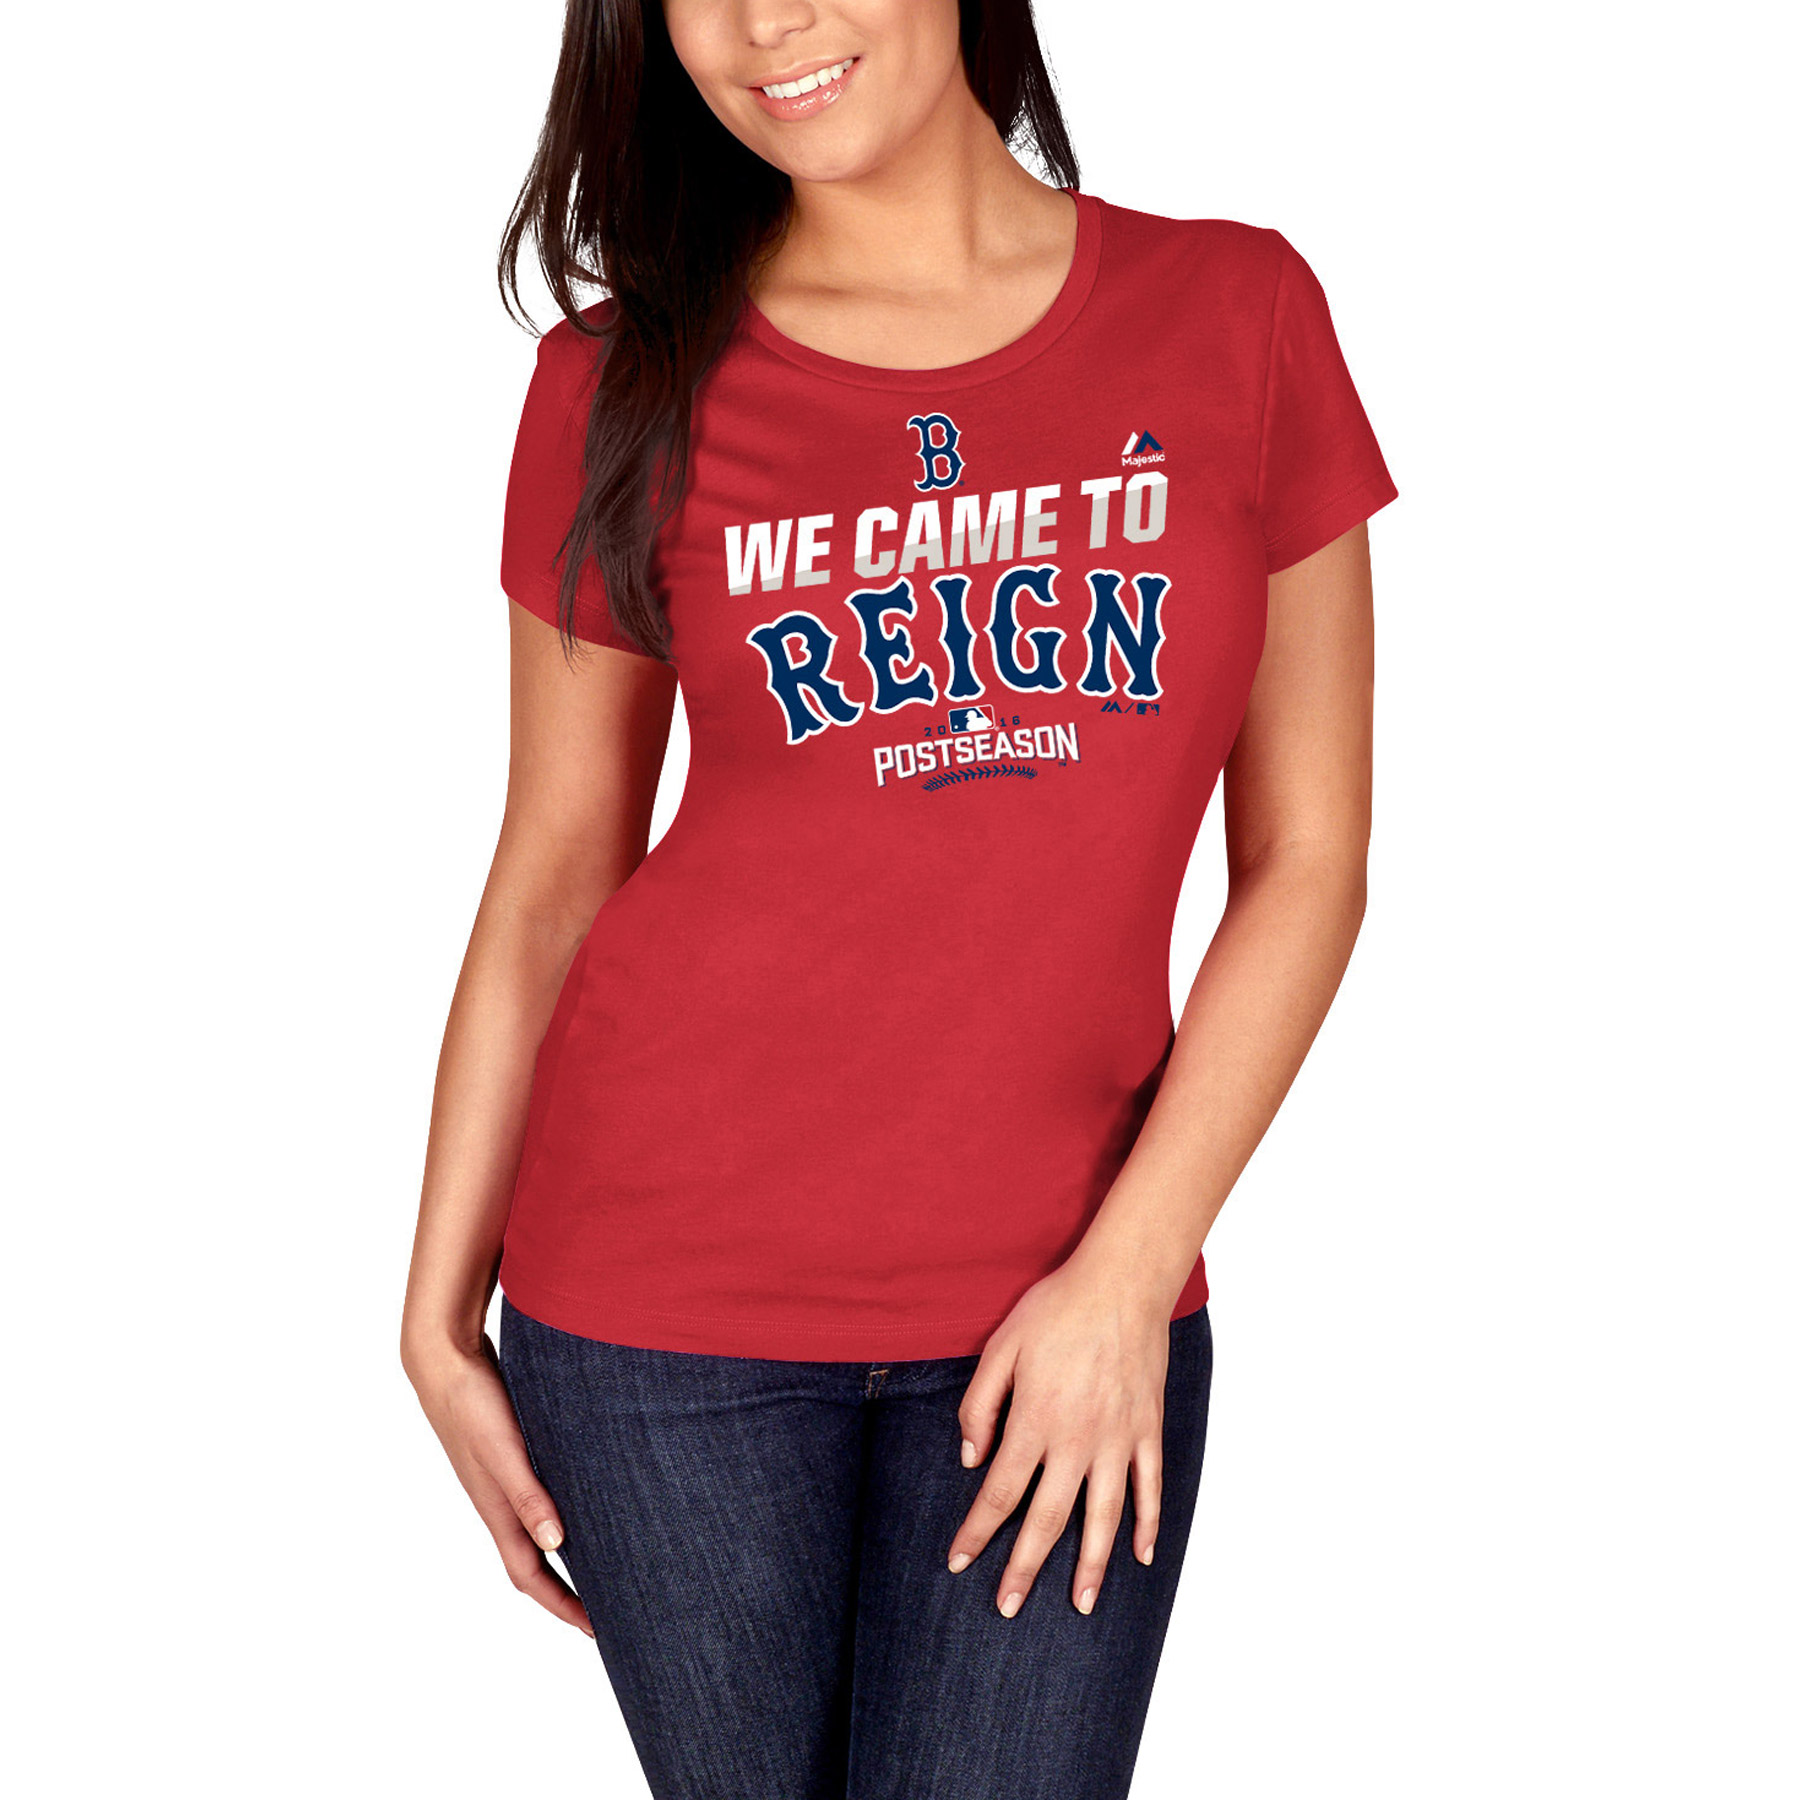 Boston Red Sox Majestic Women's Authentic Collection Postseason Participant We Came To Reign T-Shirt - Red